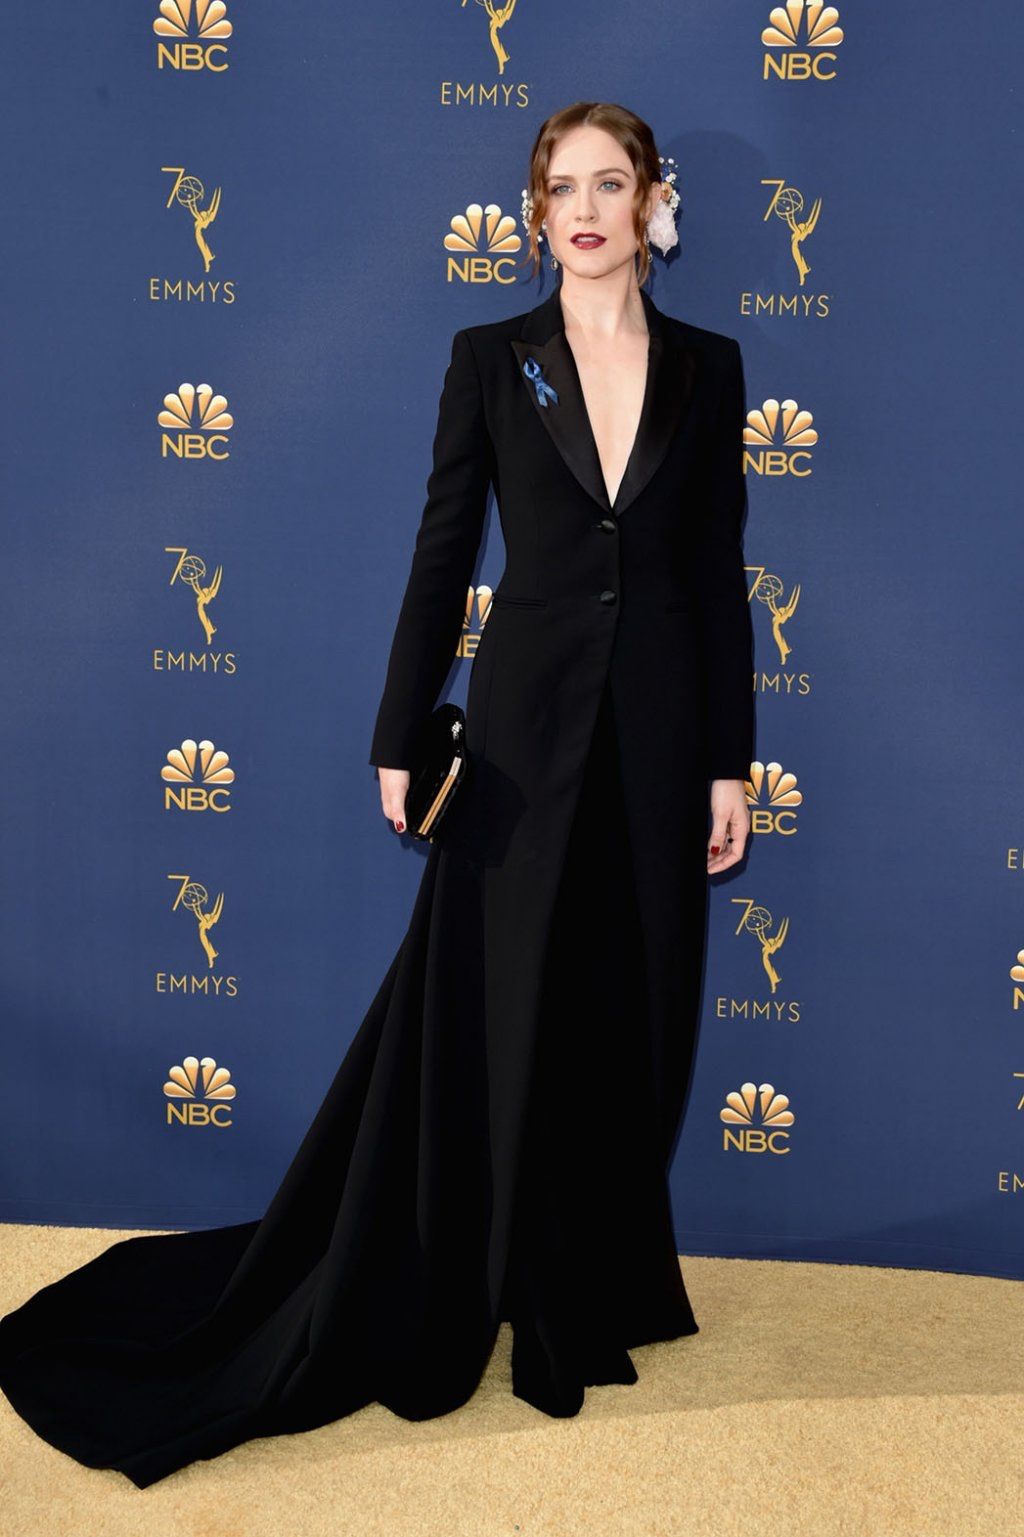 Evan Rachel Wood in Altuzarra, 70th Annual Primetime Emmy Awards, Betty White, Emmys 2018, Fashion, Featured, Glenn Weiss, Hannah Gadsby, highlights, Jav Svendsen, Online Exclusive, Style, The Marvellous Mrs. Maisel, top moments, We solved it, Diversity